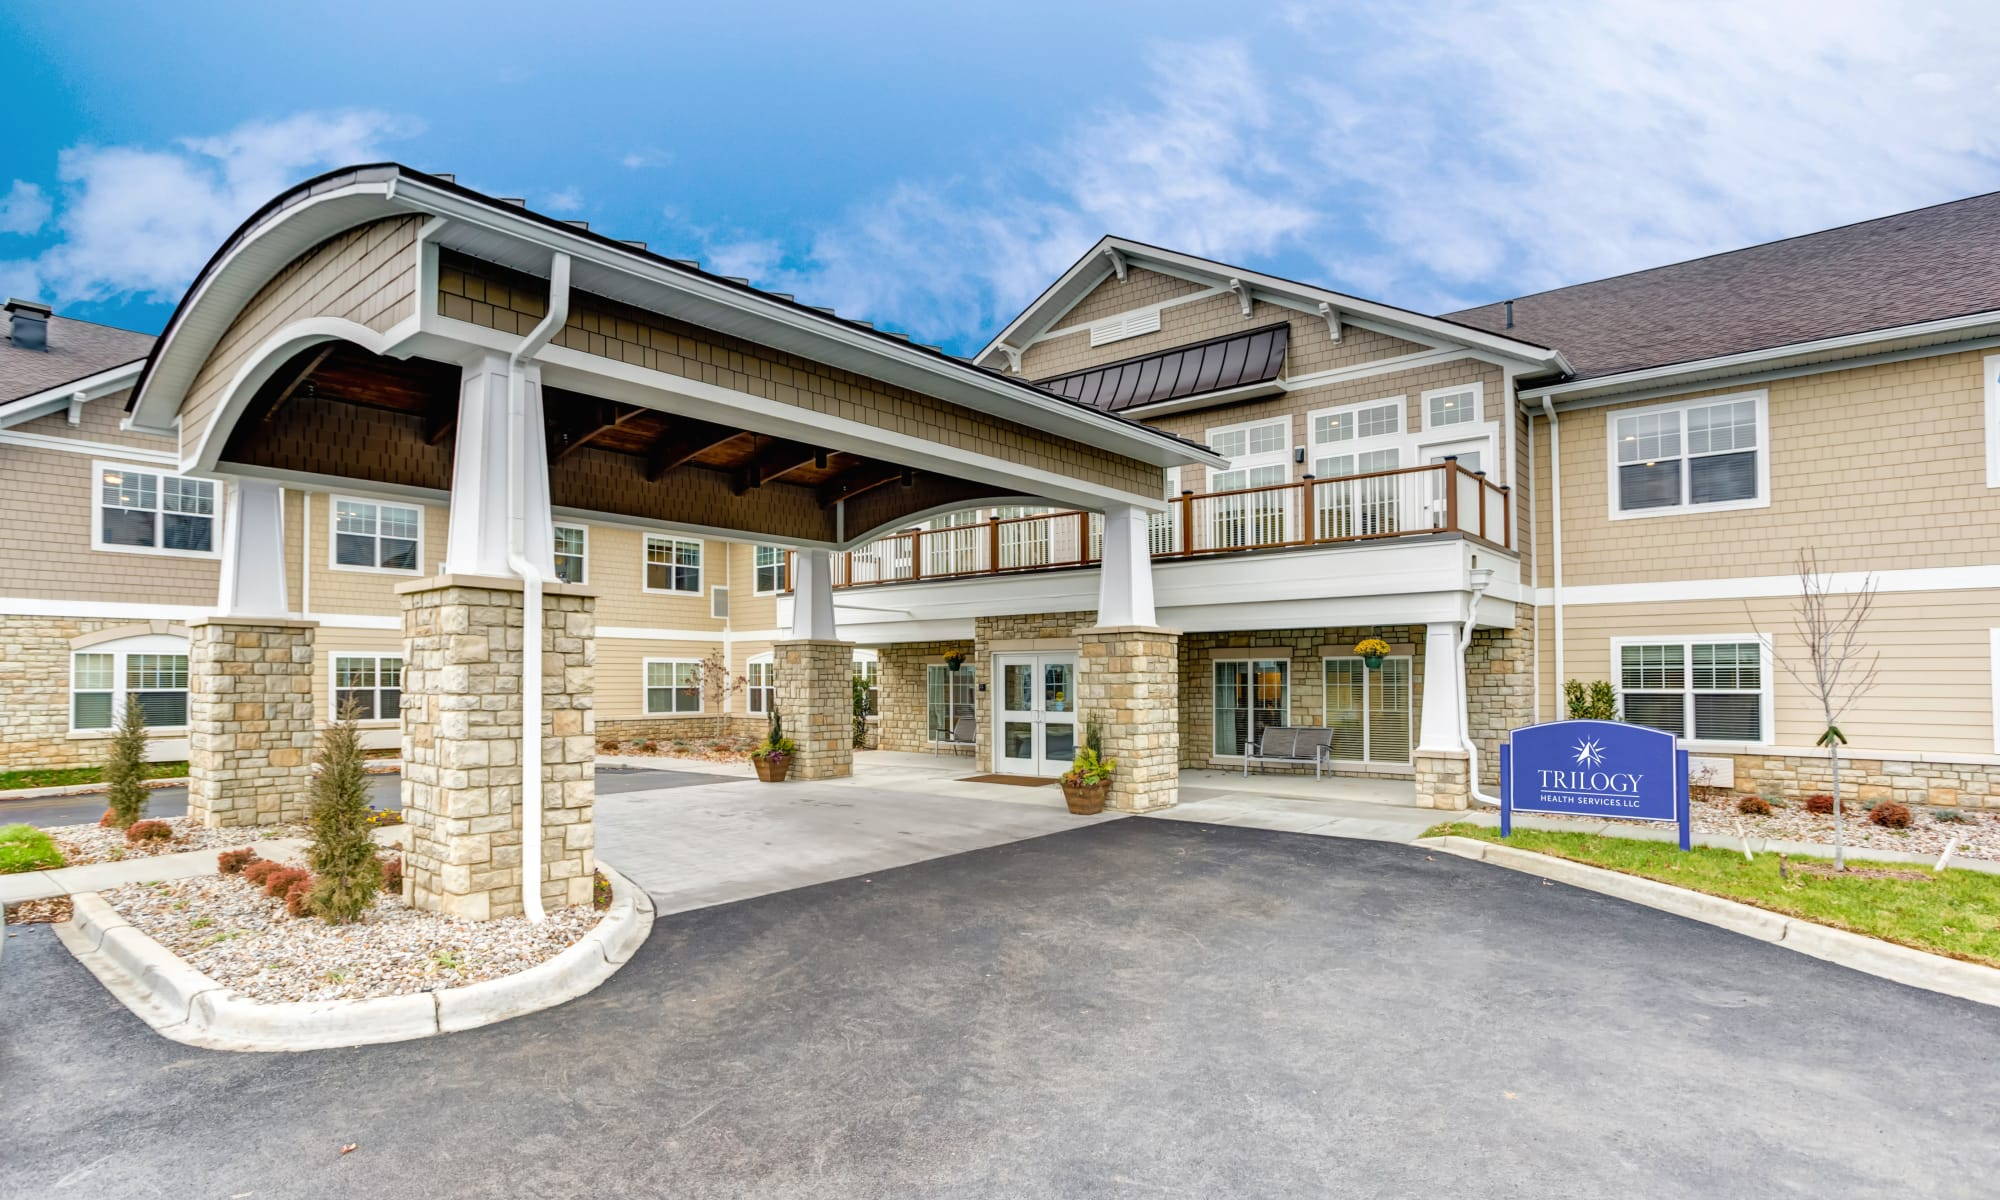 Senior living in Hilliard, Ohio